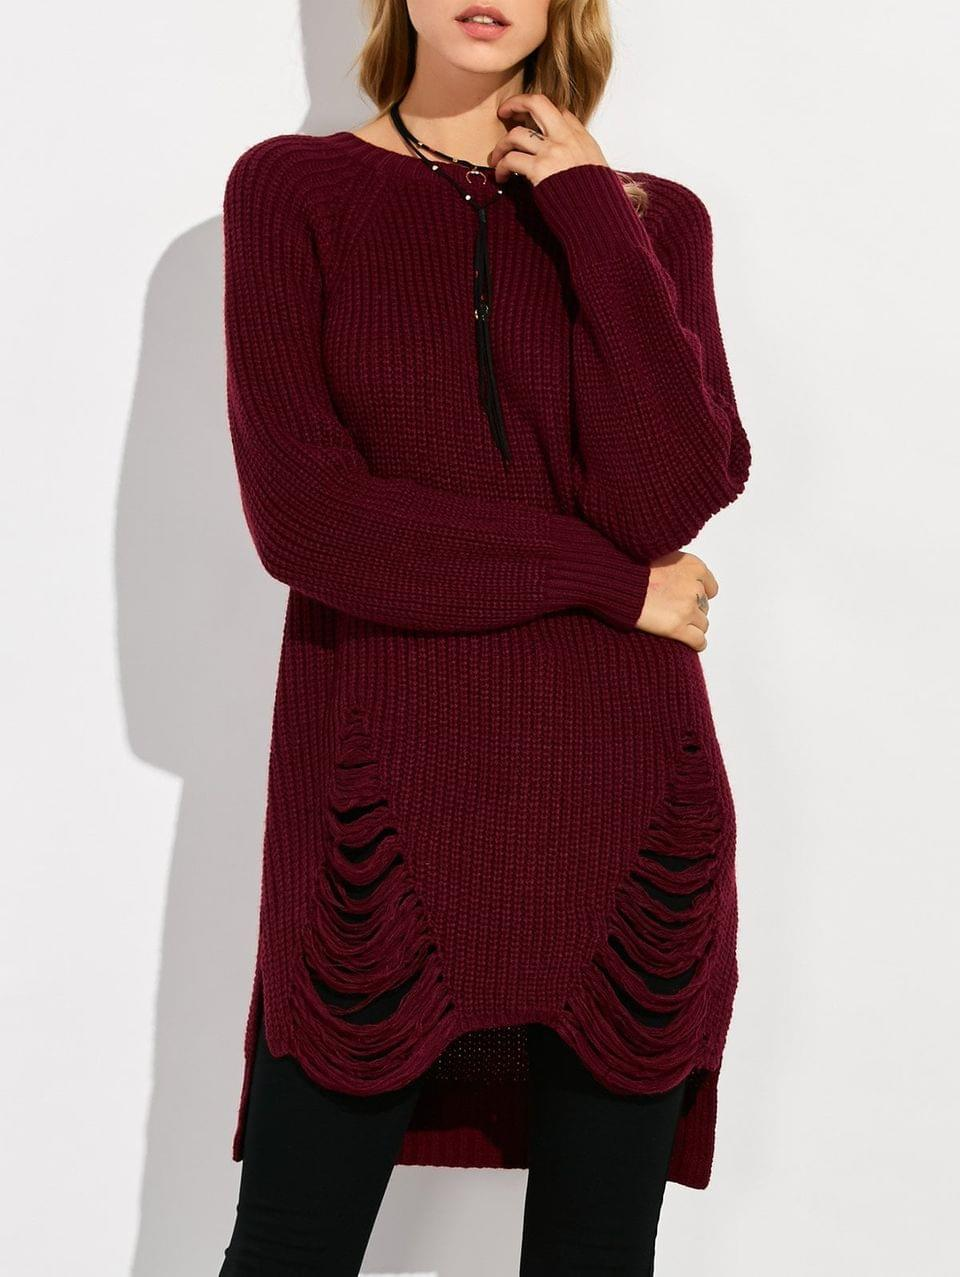 Women's Crew Neck Ripped Chunky High Low Sweater - Wine Red Xl